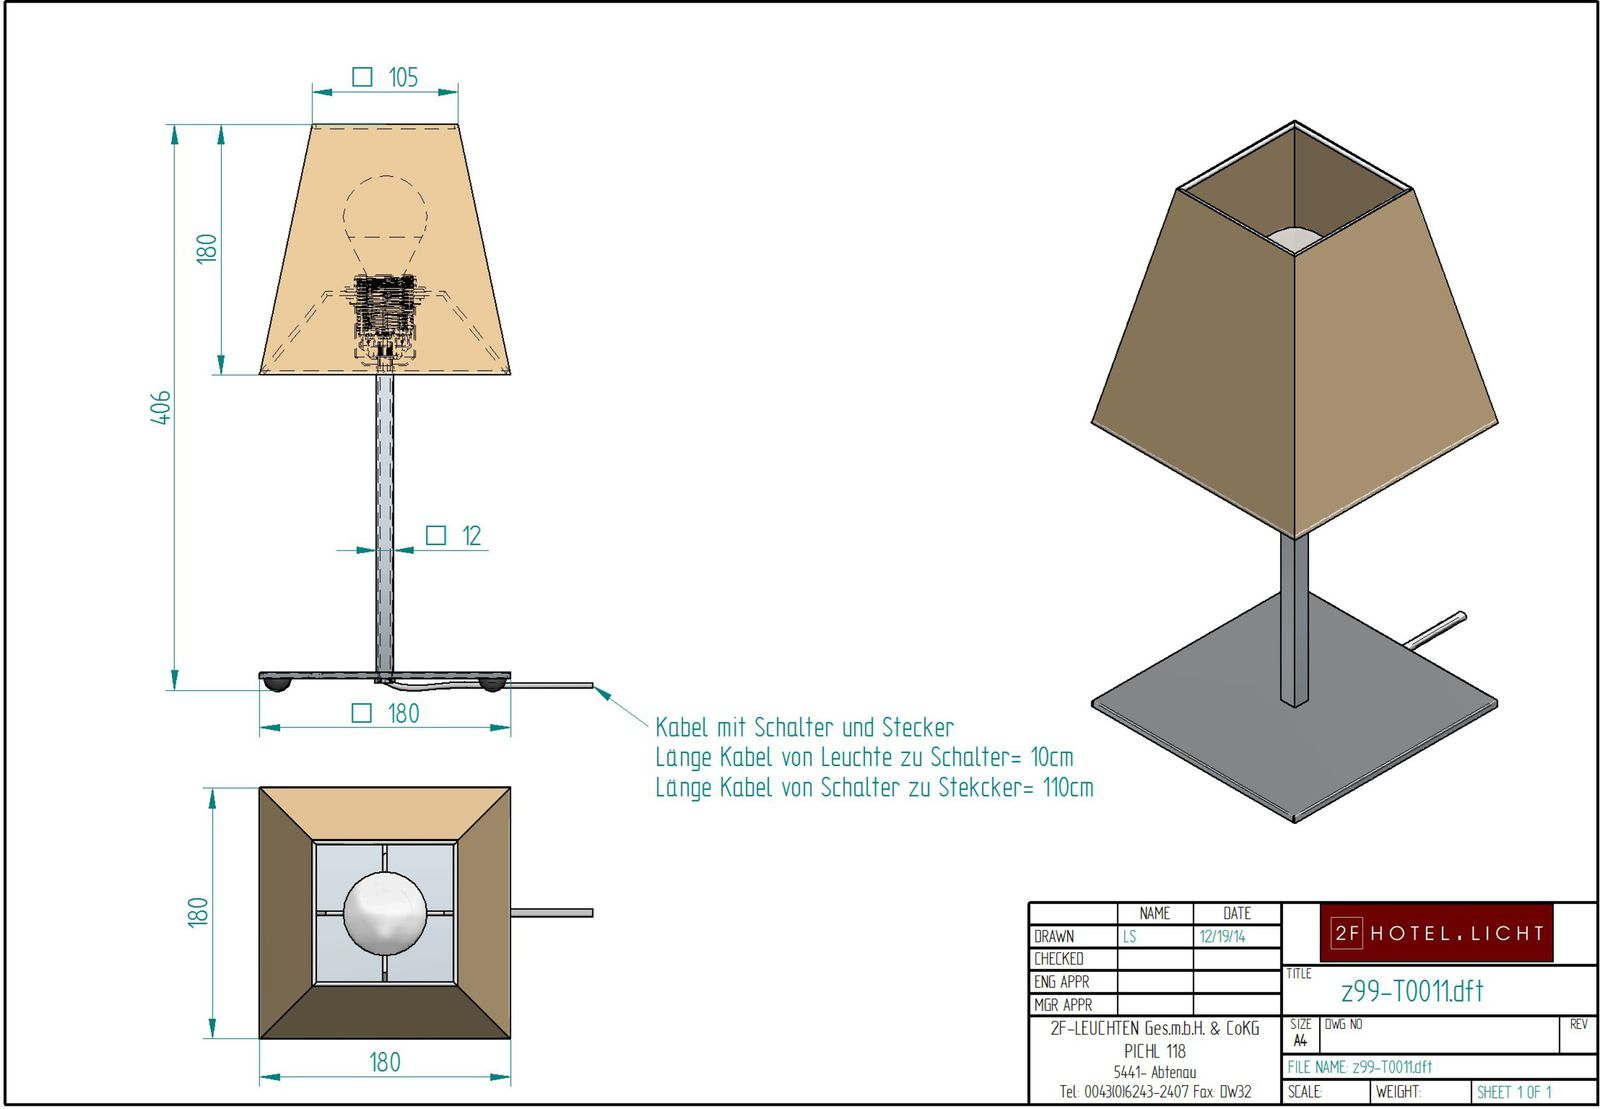 table lamp 1 flg., height=407mm, base plate=180mm, shade: 180mmx180mm, suface: brushed nickel, technical details: 1xE27, 40W